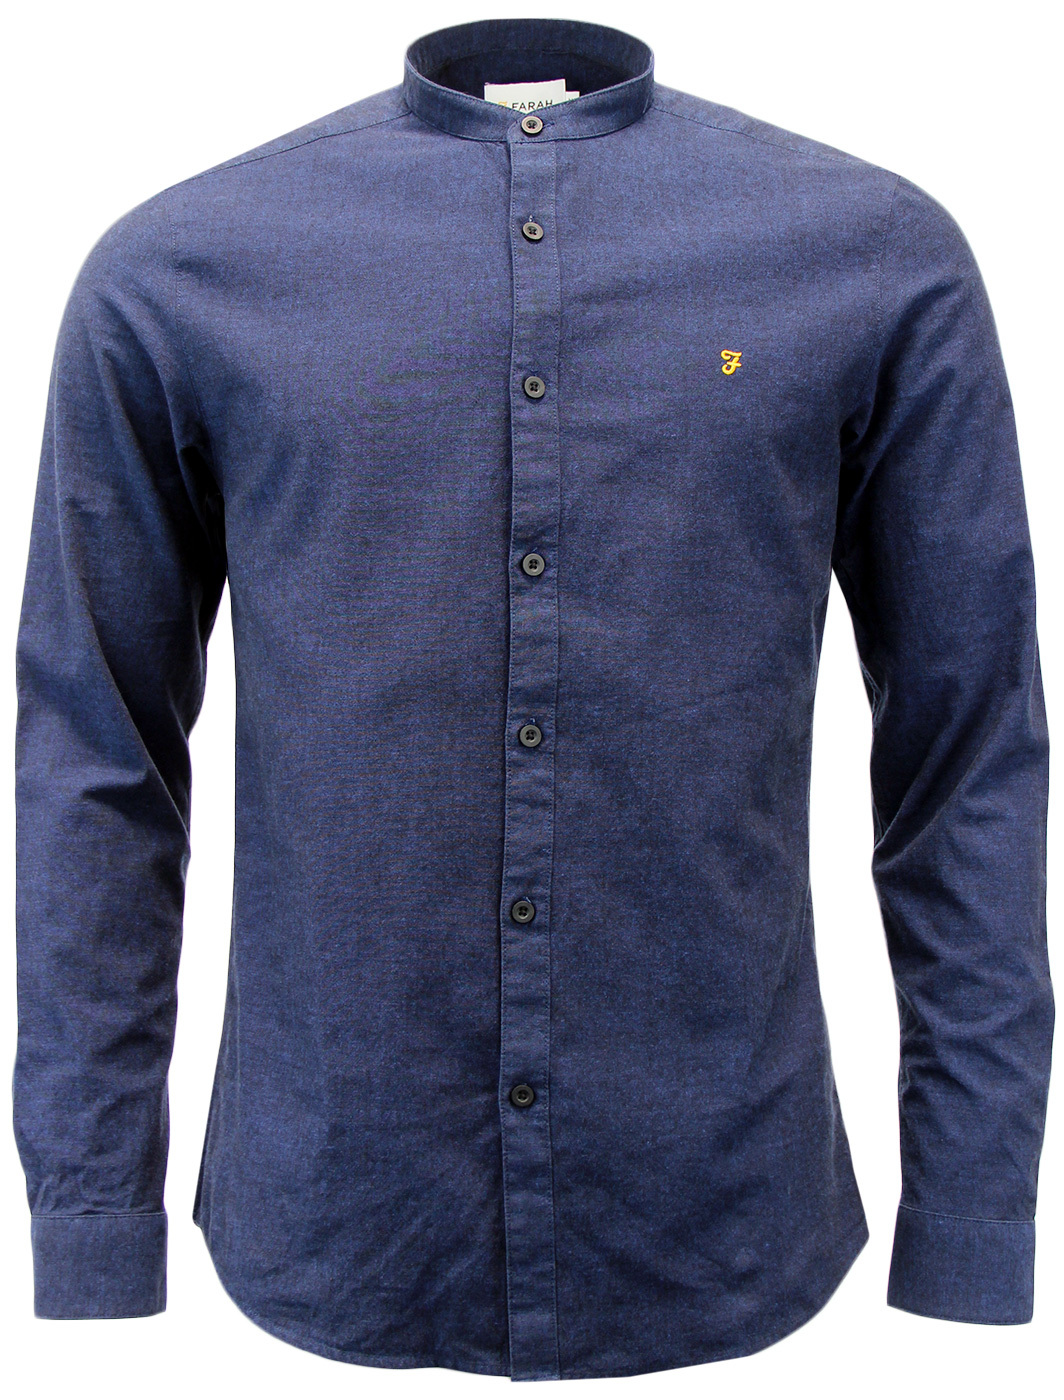 Steen FARAH Retro Mod Grandad Collar Oxford Shirt